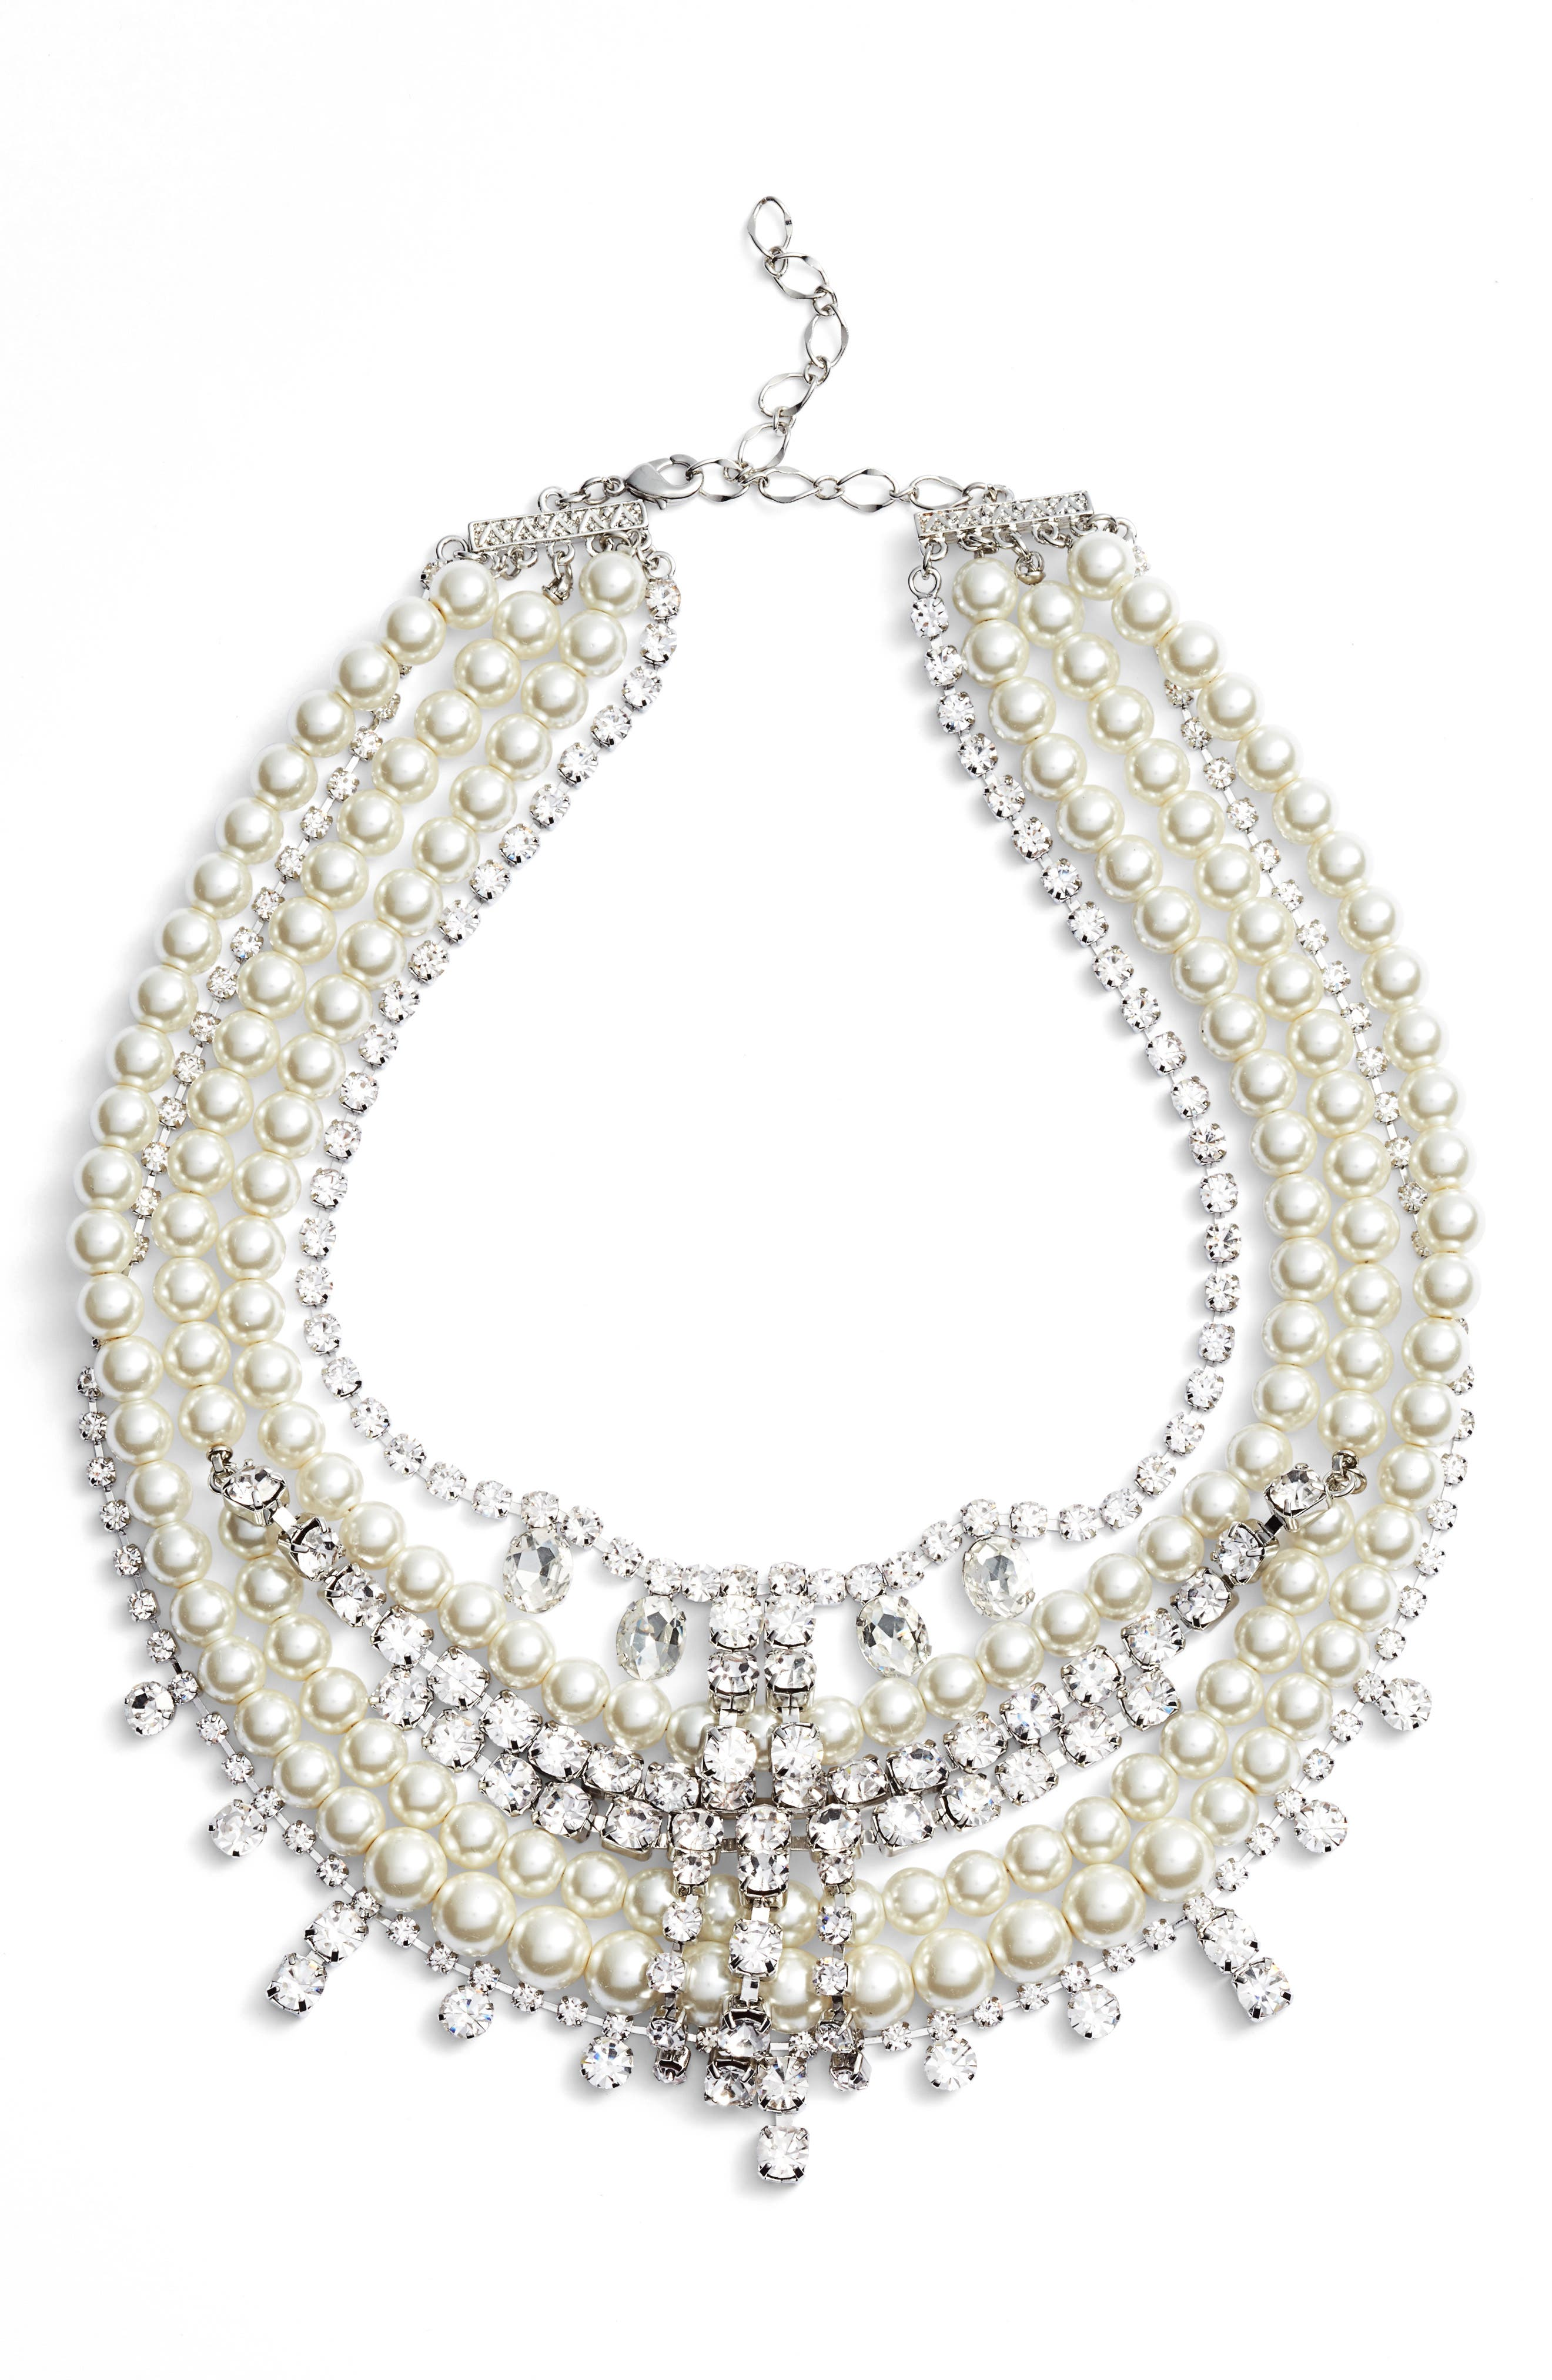 Crystal & Imitation Pearl Multistrand Necklace,                         Main,                         color, SILVER